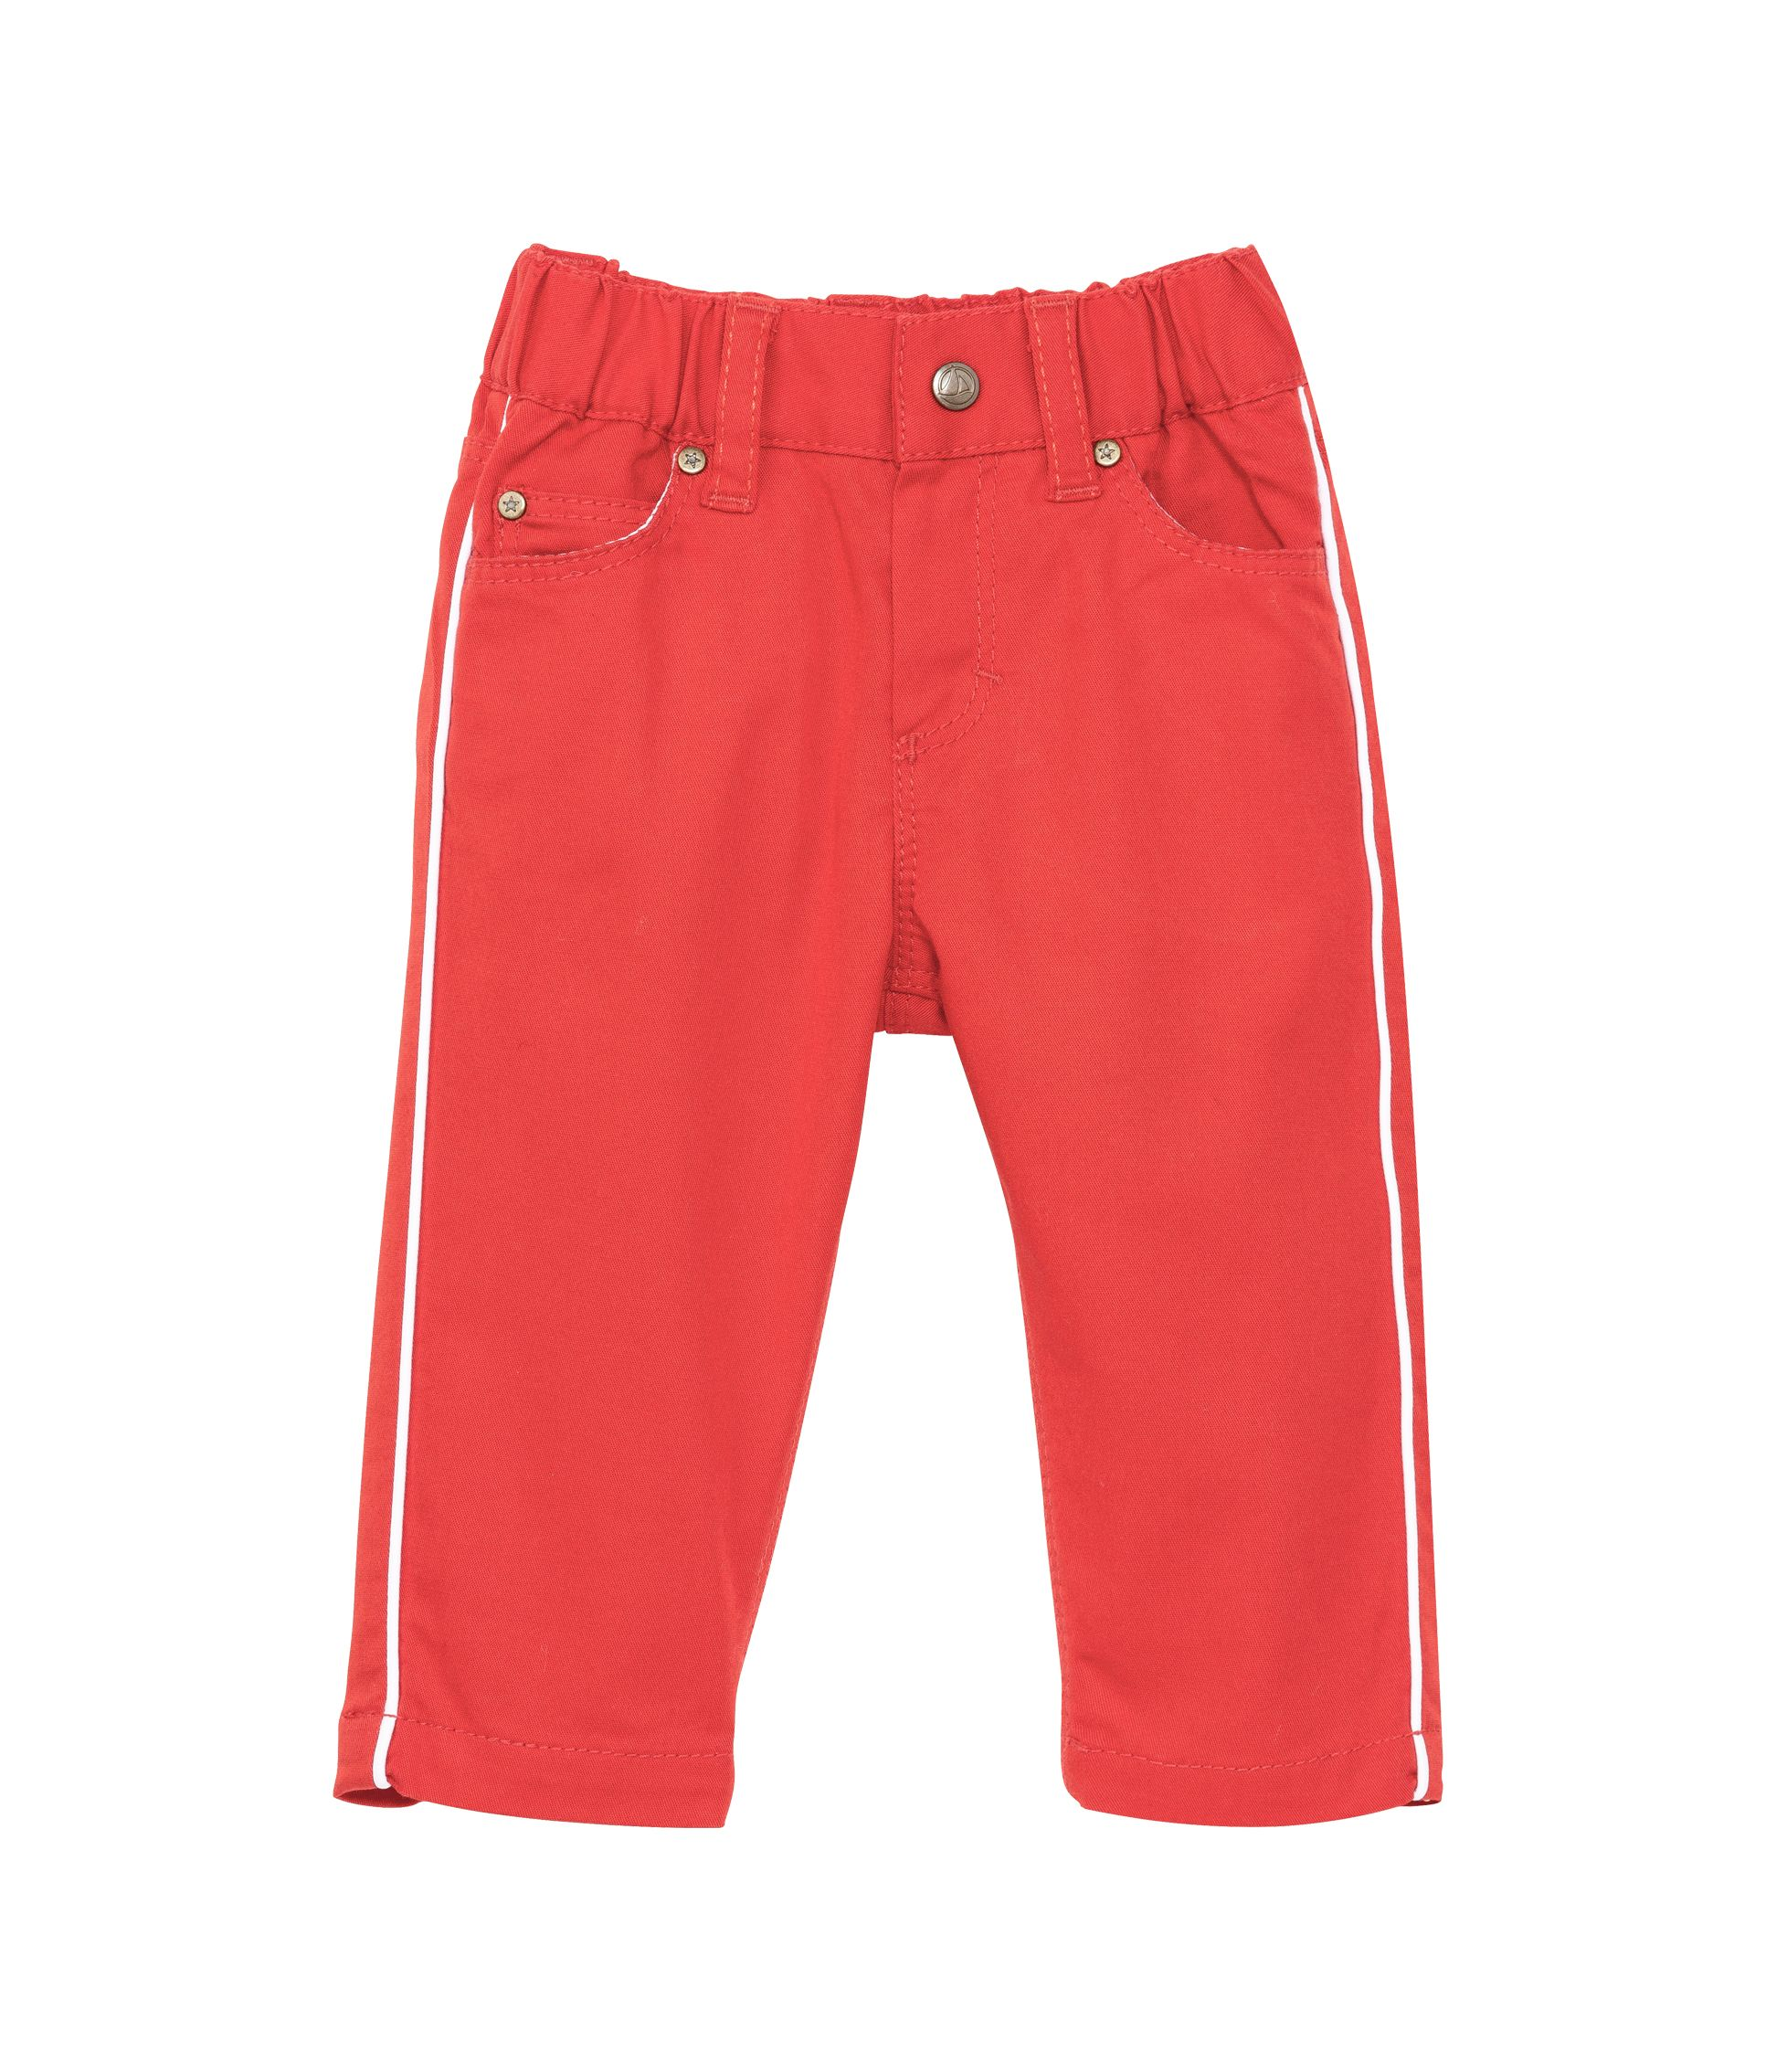 Babys slim fit 5 pocket trouser